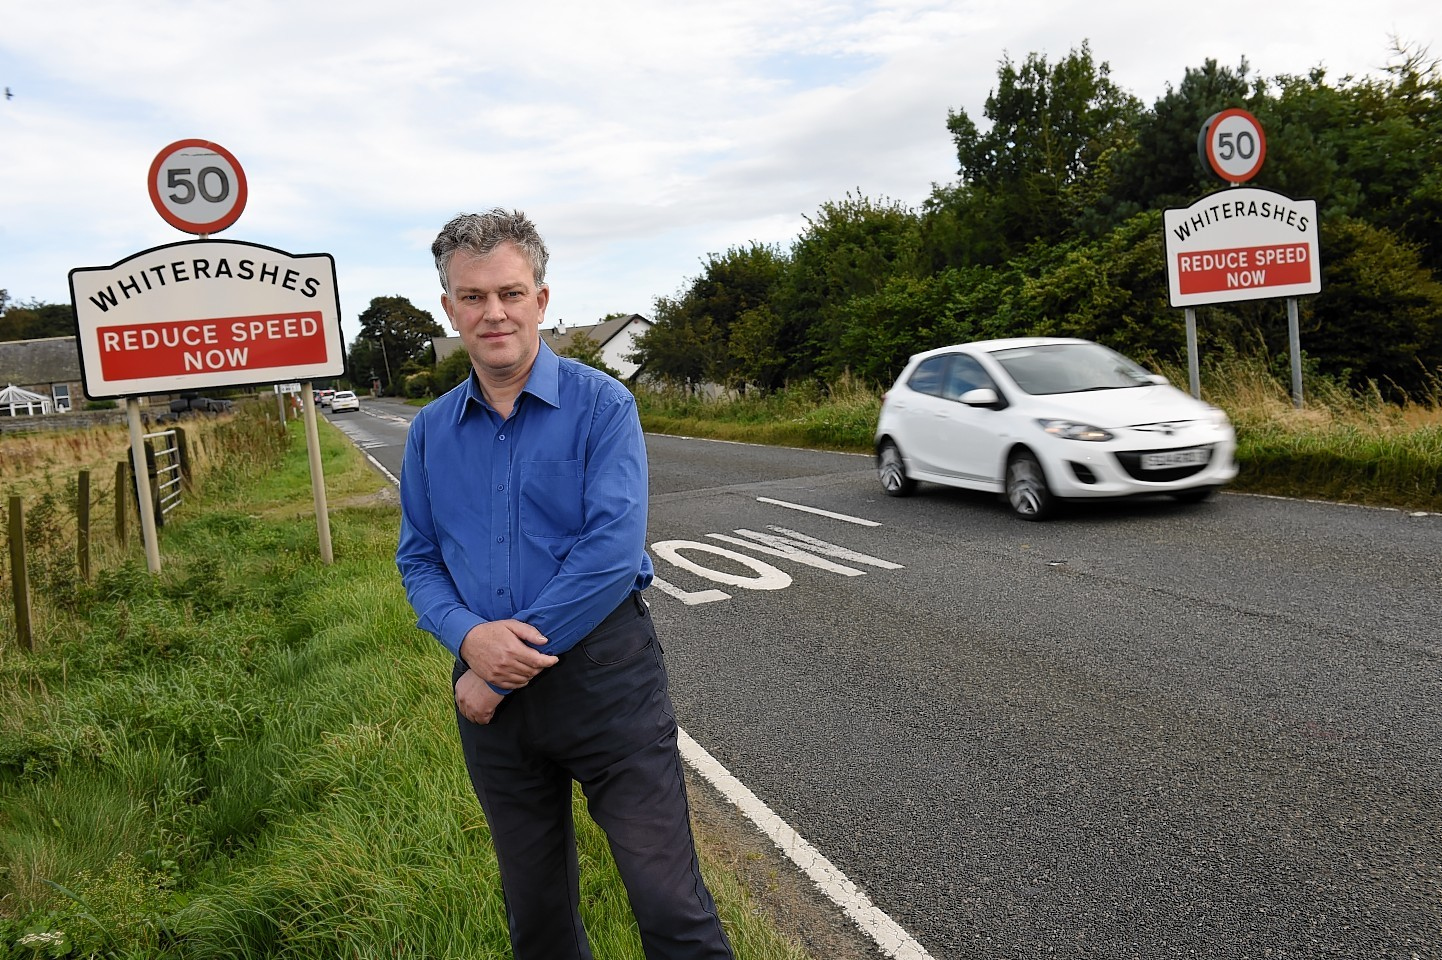 Councillor Martin Ford in Whiterashes. Credit: Kenny Elrick.